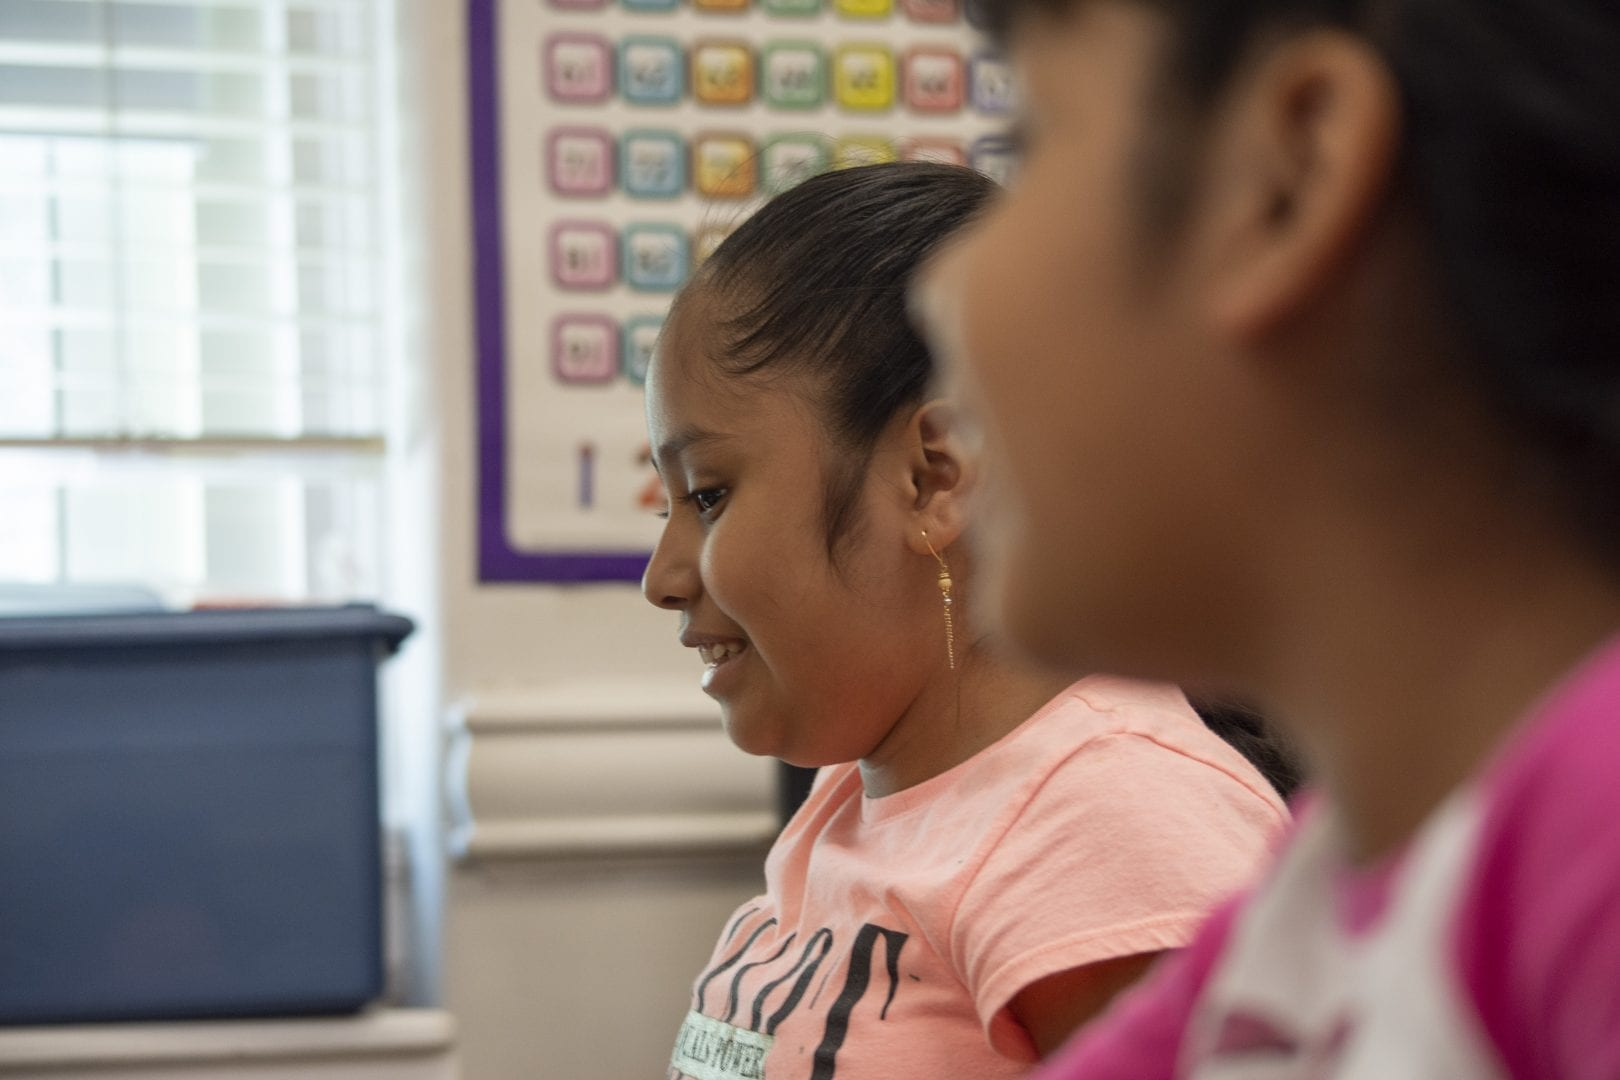 Two preteen girls in a classroom